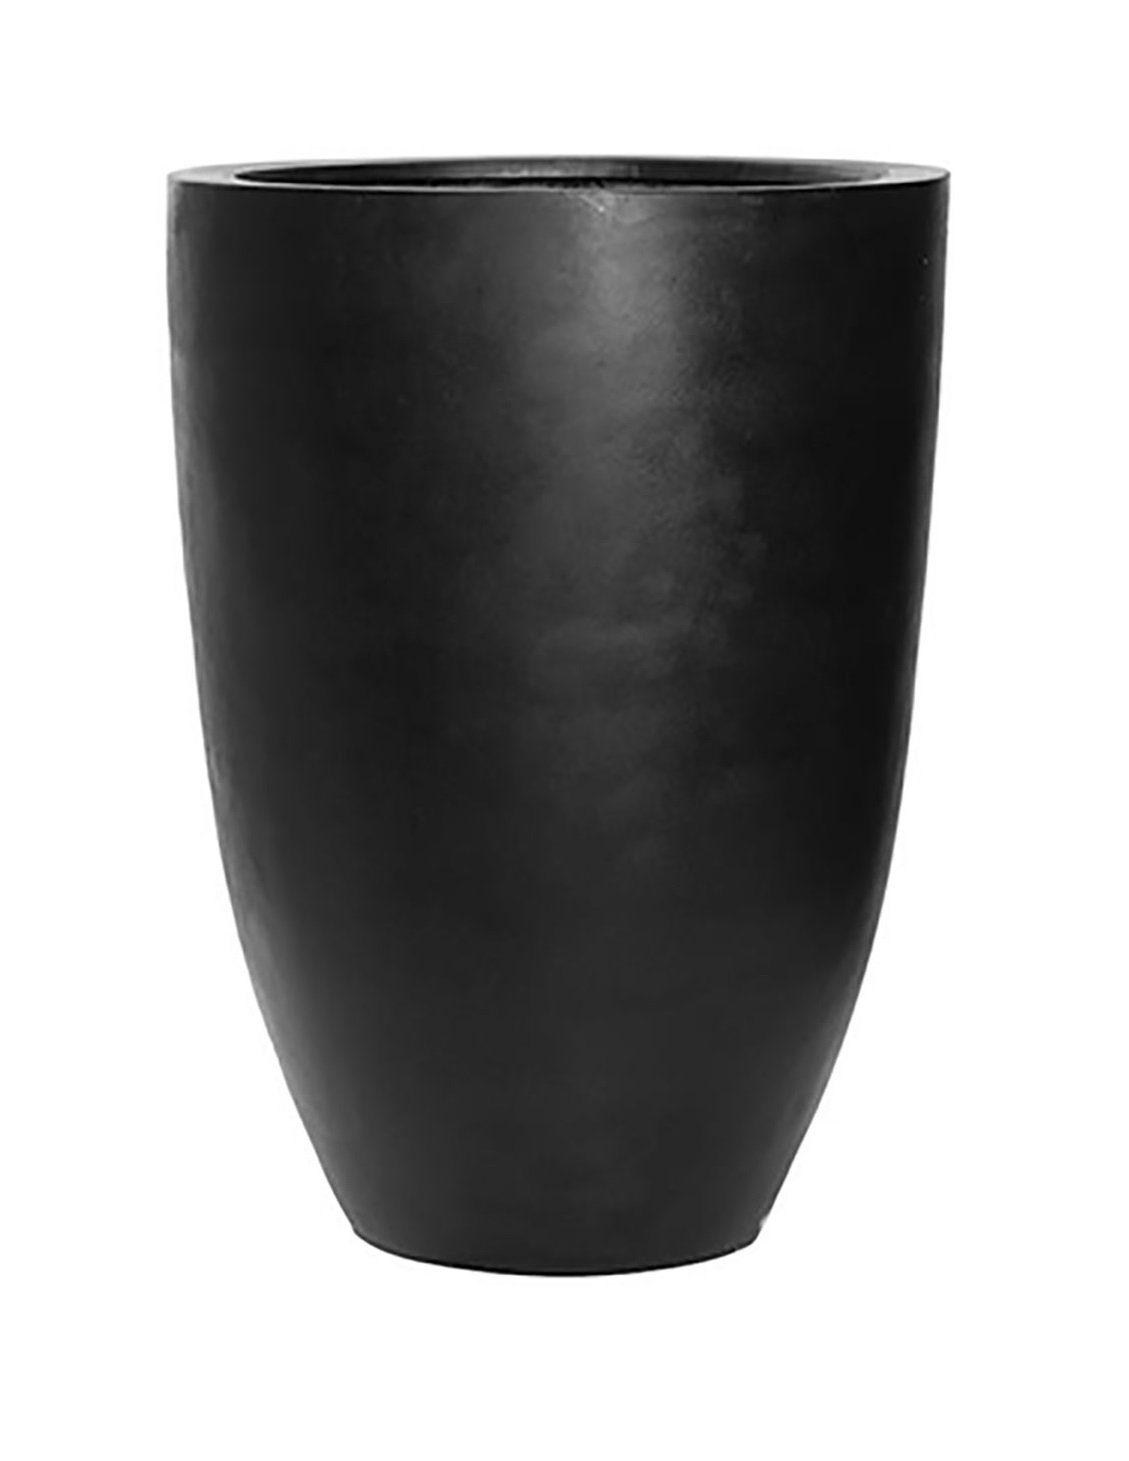 Ben XL Tall Black Flower Planter Tapered Cylinder Fiberstone Vase 28'' H x 20.5'' W - By Pottery Pots